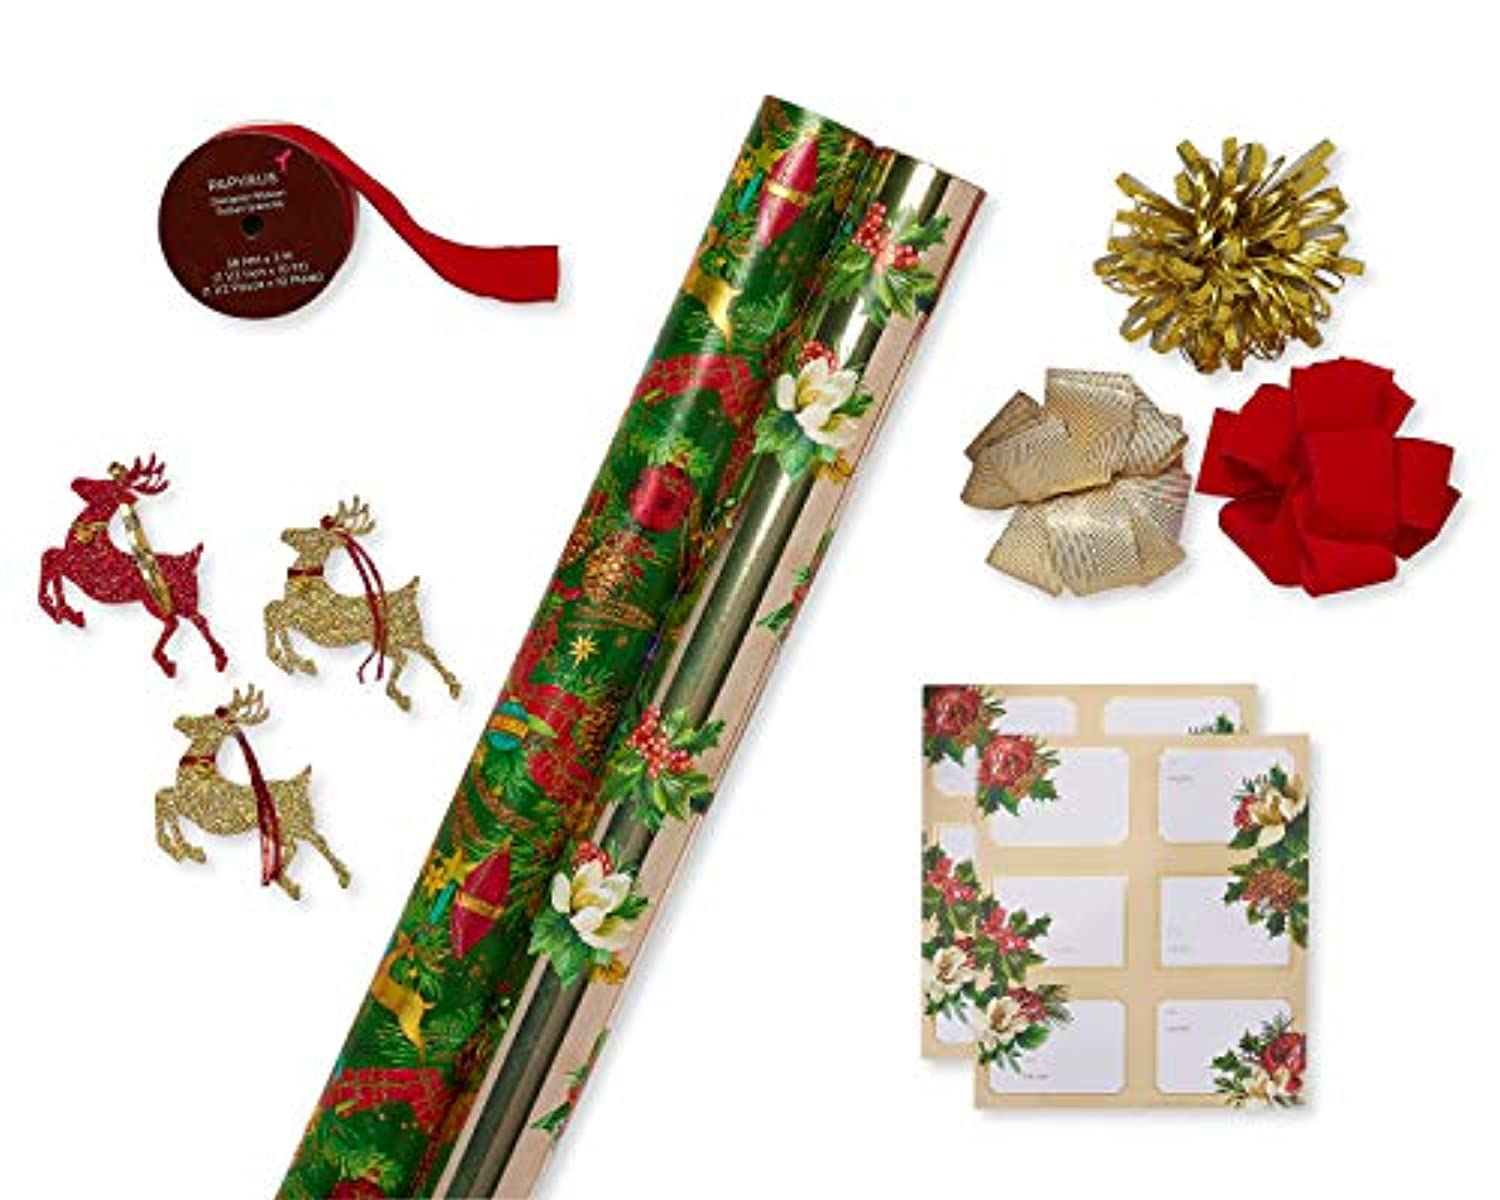 Classier: Buy Papyrus Papyrus Christmas Wrapping Paper Kit with Gridlines, Bows and Gift Tags, Holiday Traditions (11-Count, 120  sq. ft.)